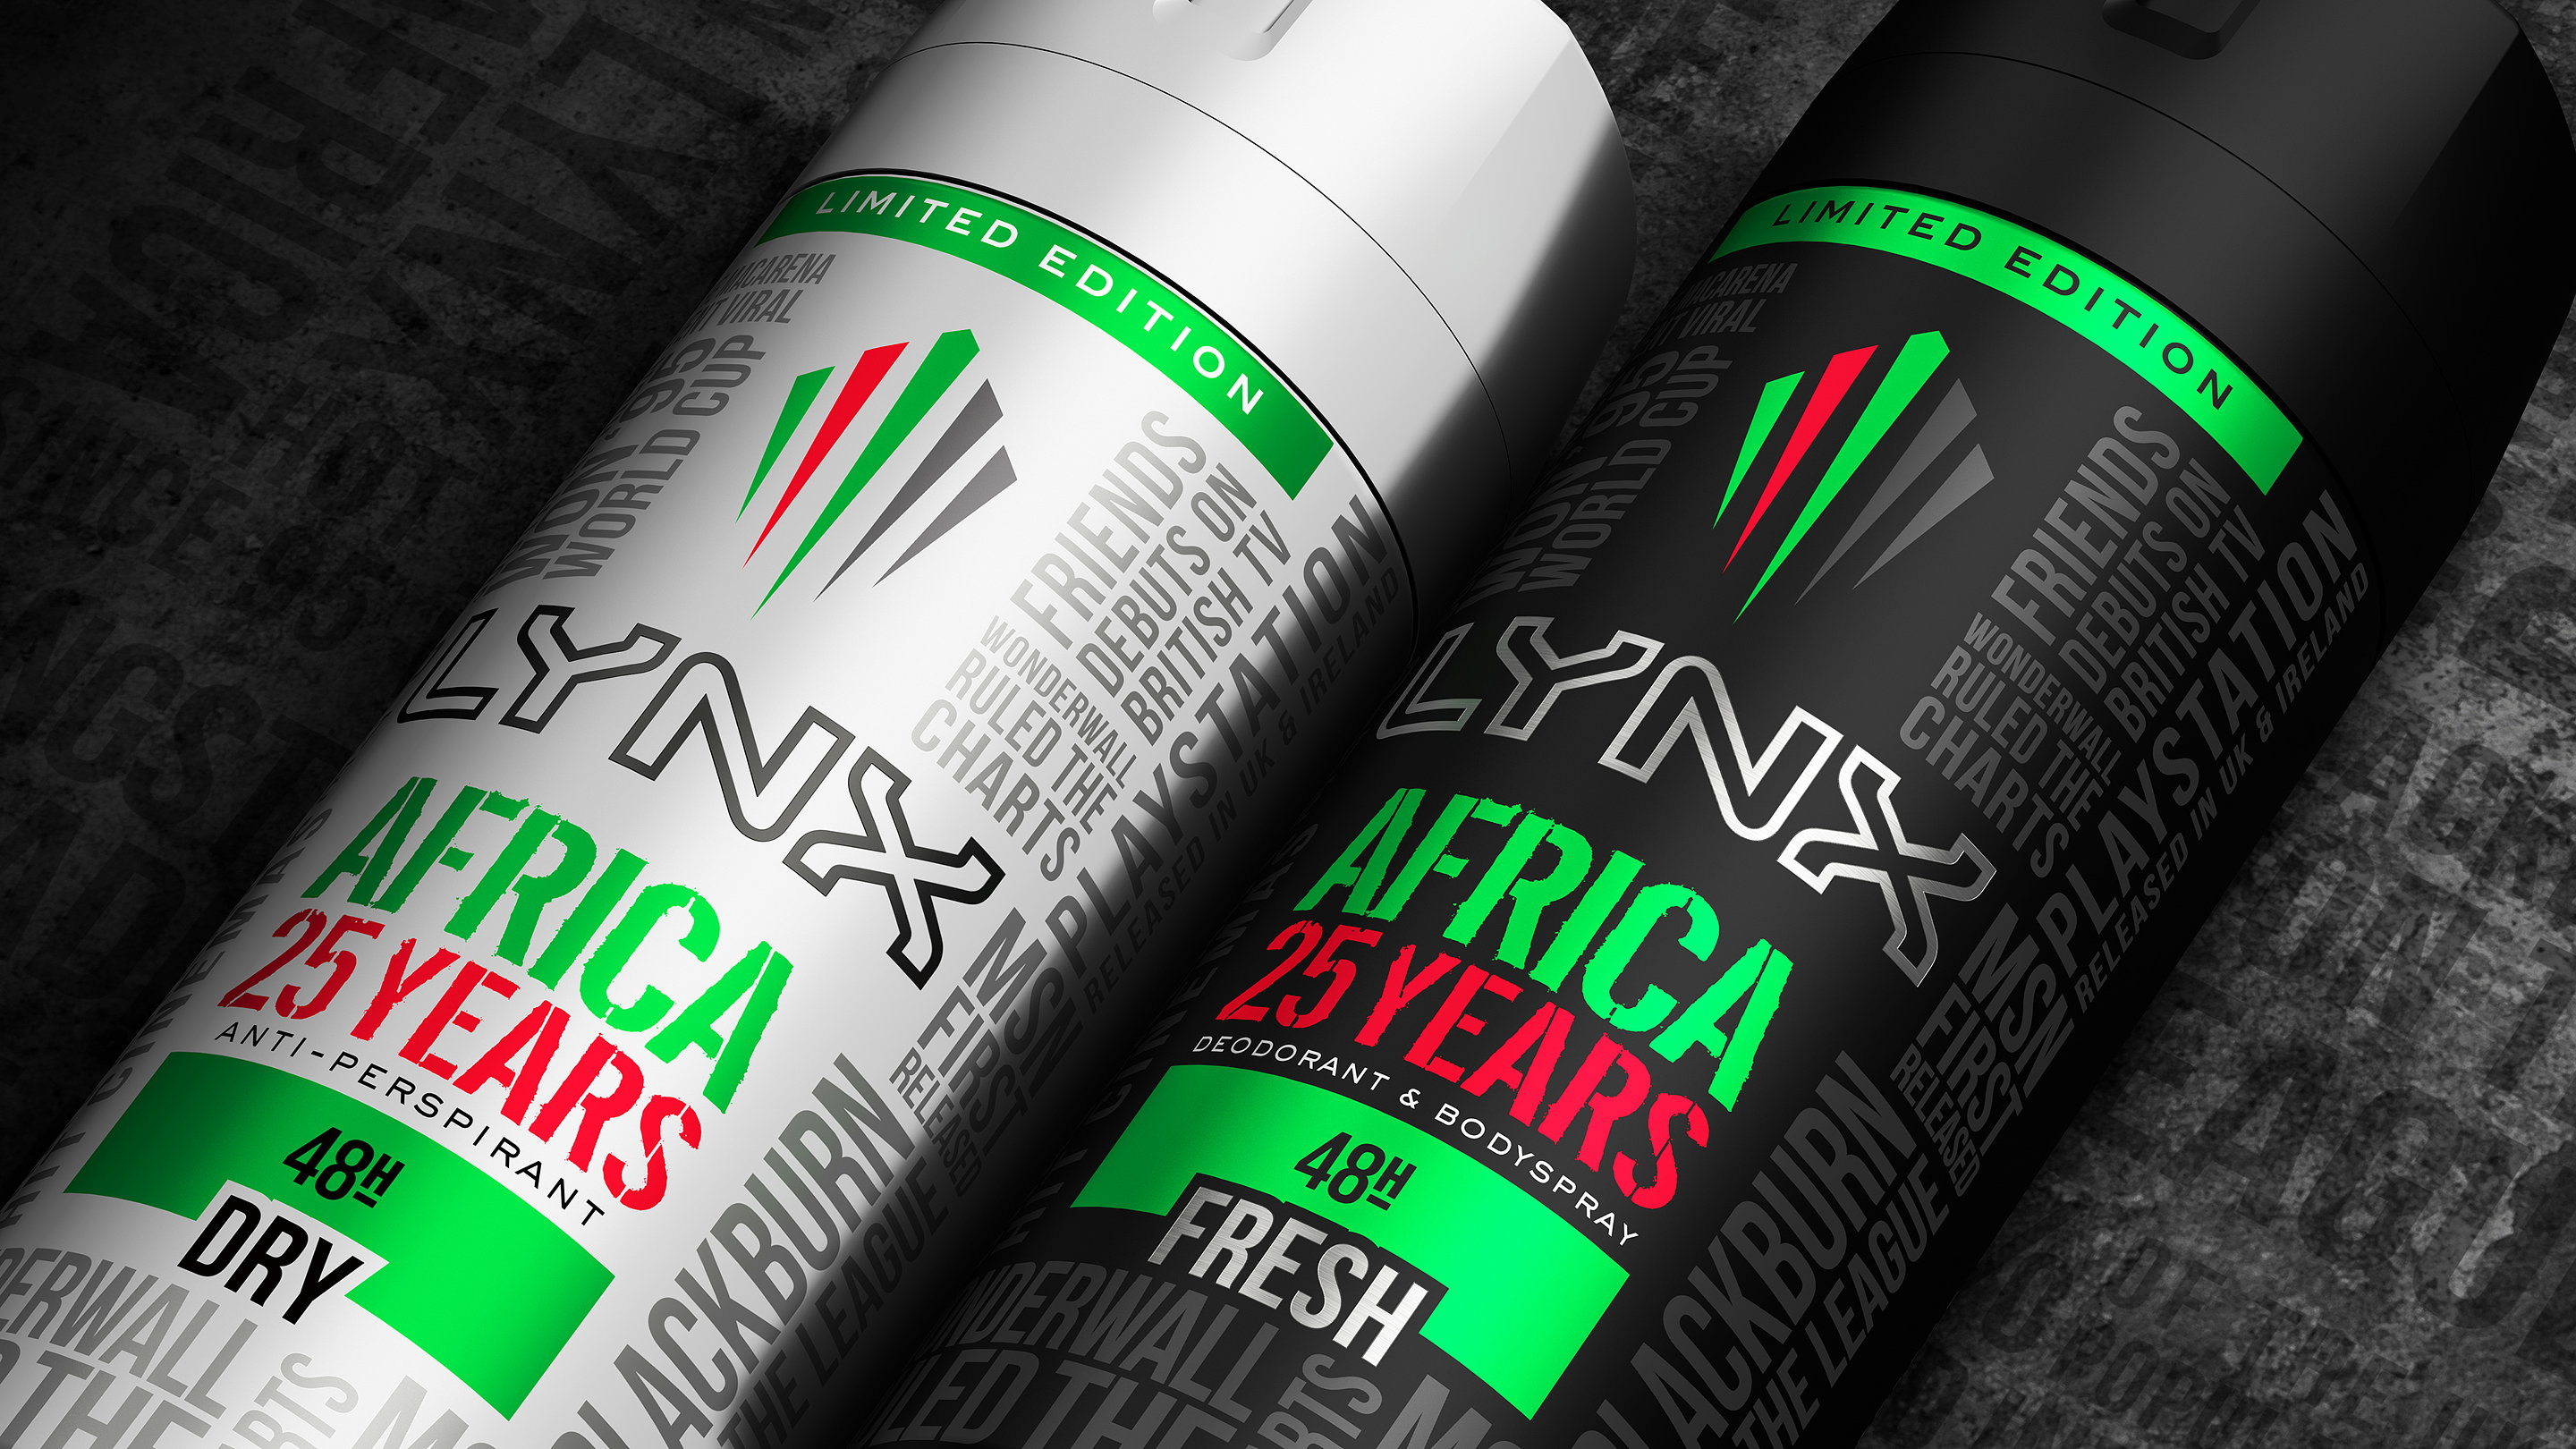 Lynx Africa 25 Years Limited Edition